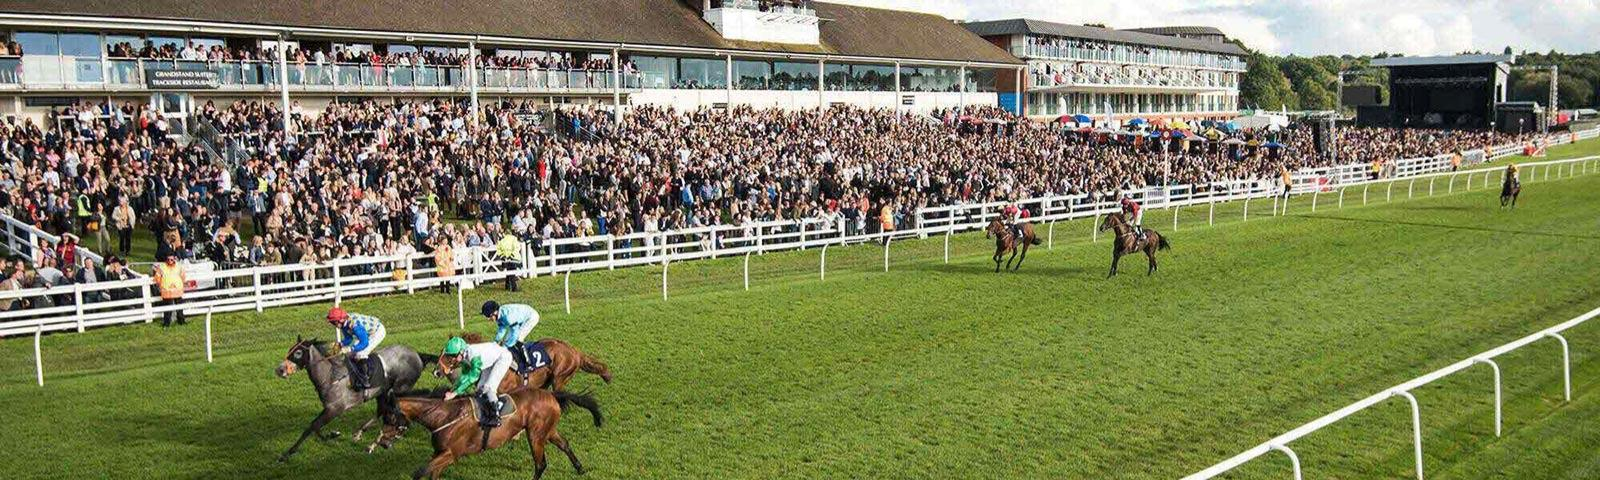 Jockeys racing past the crowds at Lingfield Park Resort.